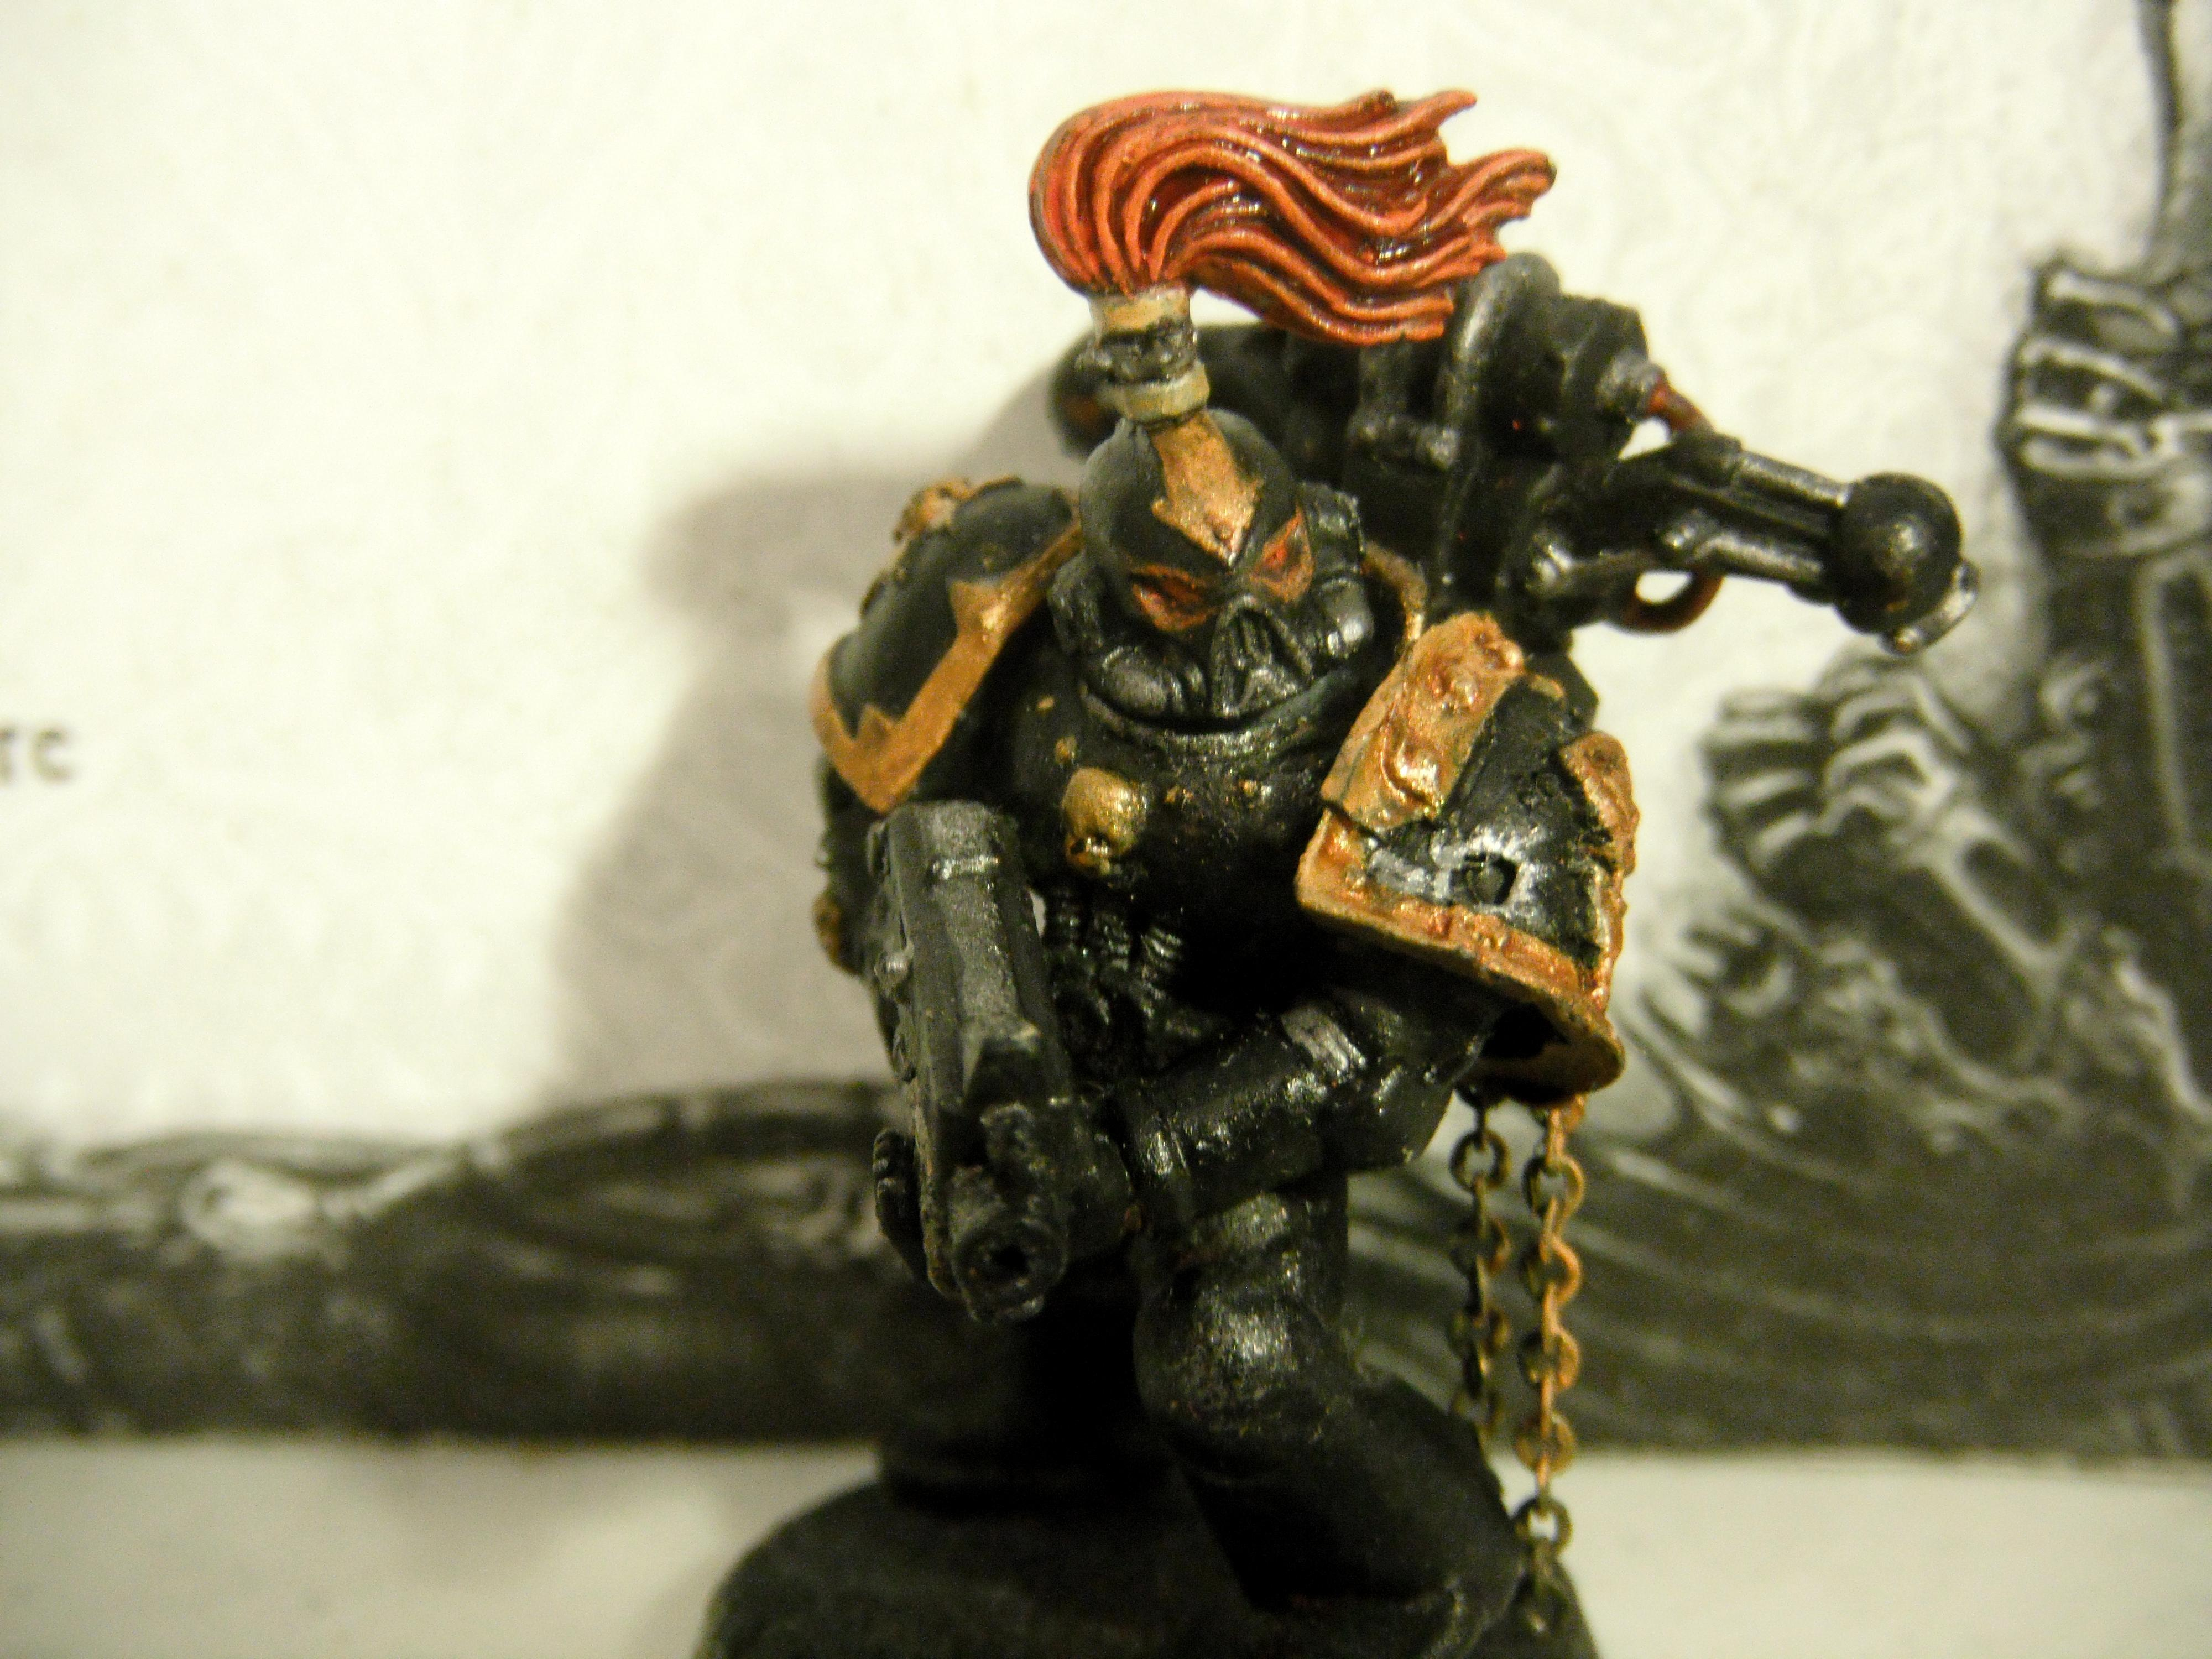 Black Legion, Chaos, Chaos Space Marines